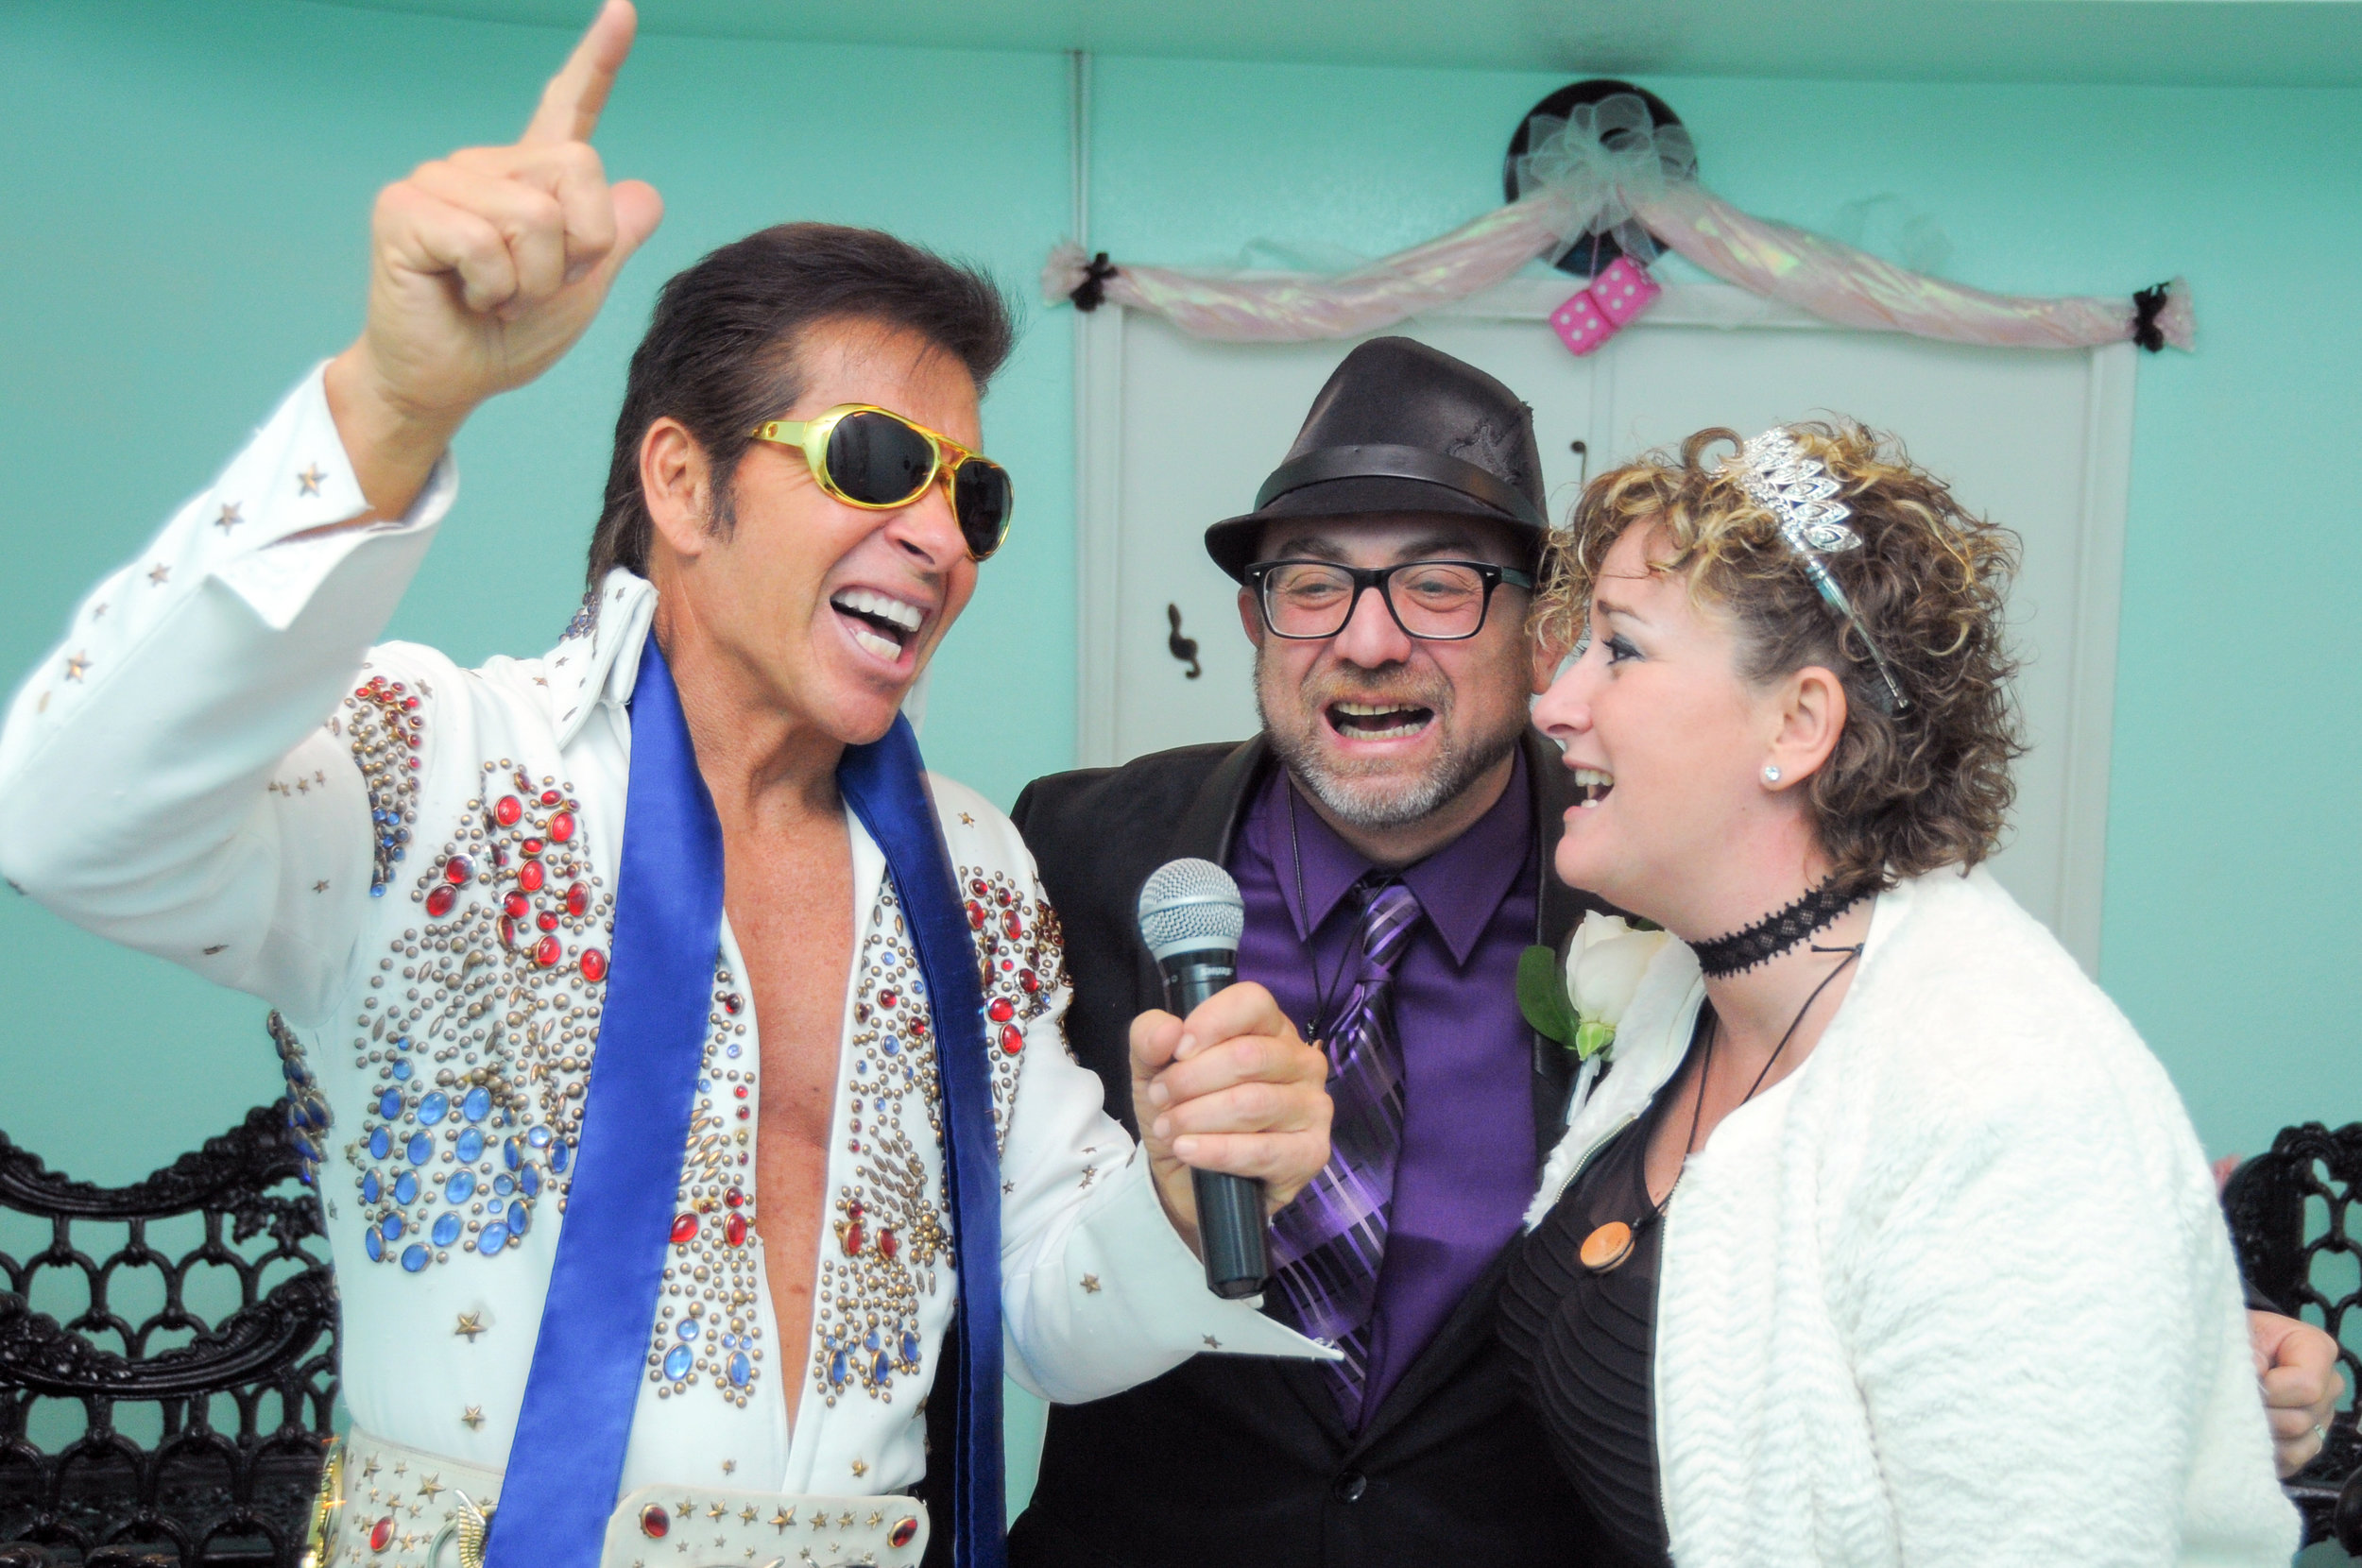 Elvis performs at a Vow renewal ceremony at The Elvis Wedding Chapel in Las Vegas. © 2017 All Rights Reserved, Destination Las Vegas Group